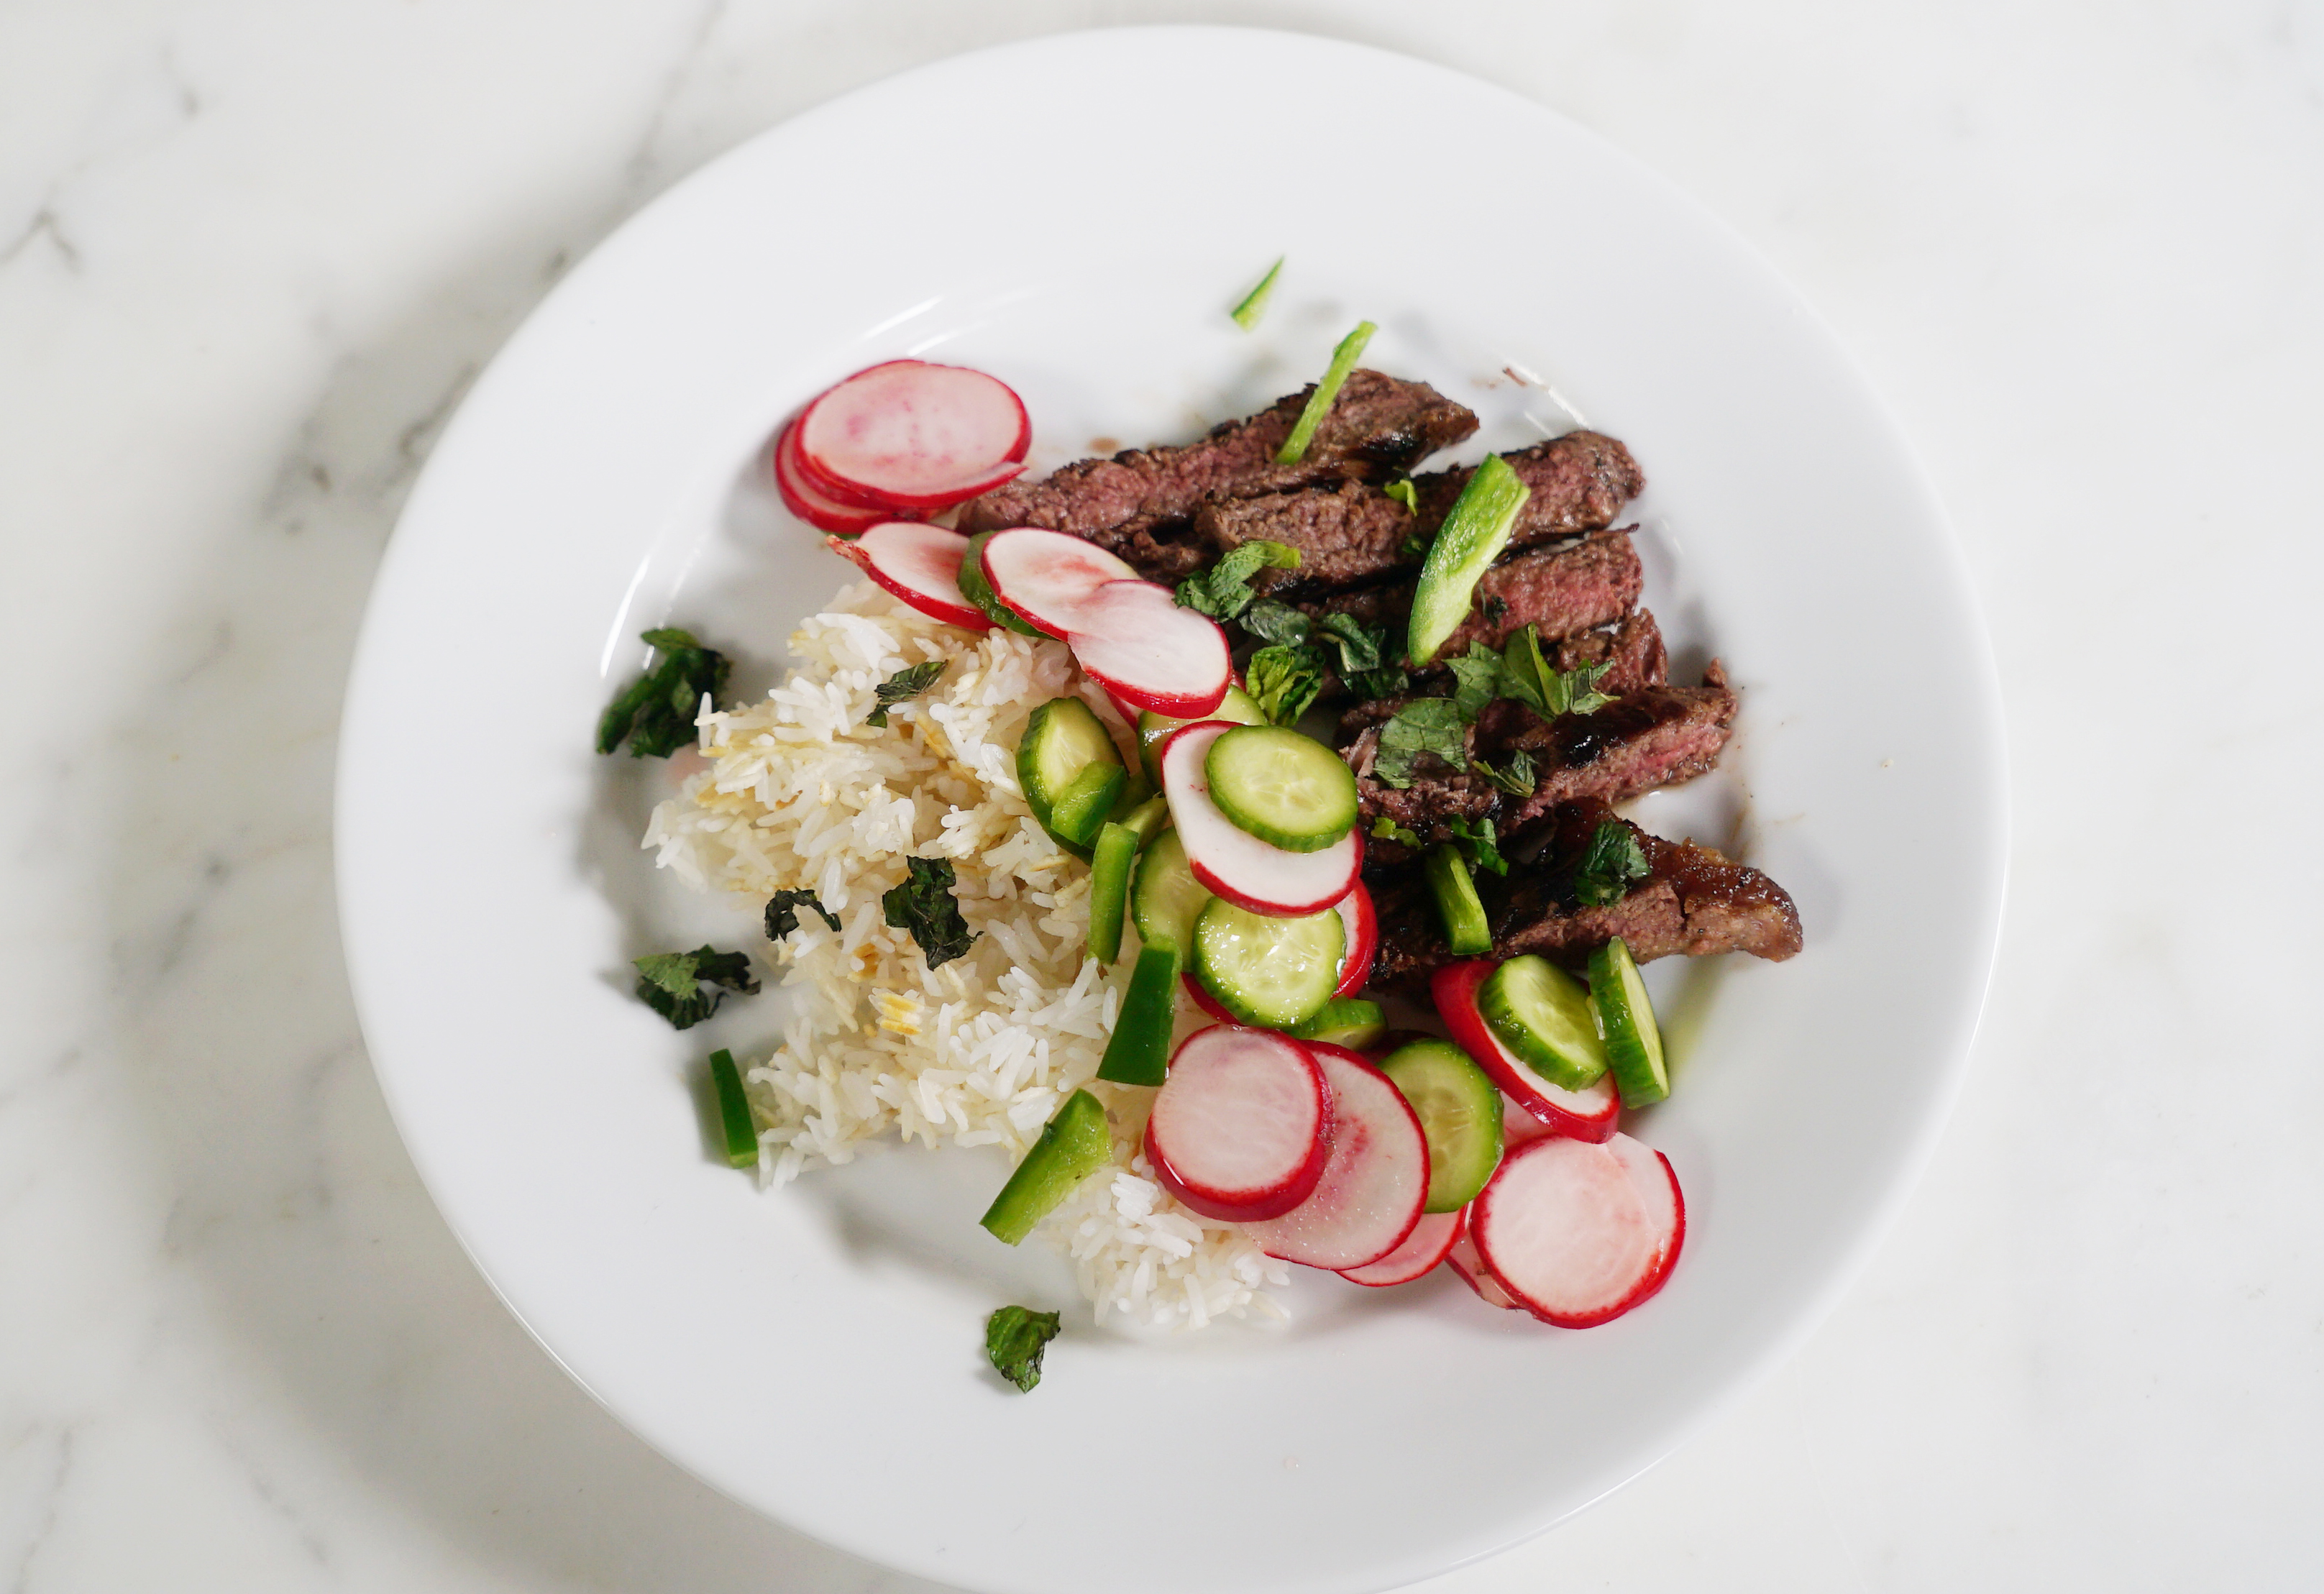 HelloFresh's Vietnamese Marinated Steak with quick-pickled veggies and jasmine rice.